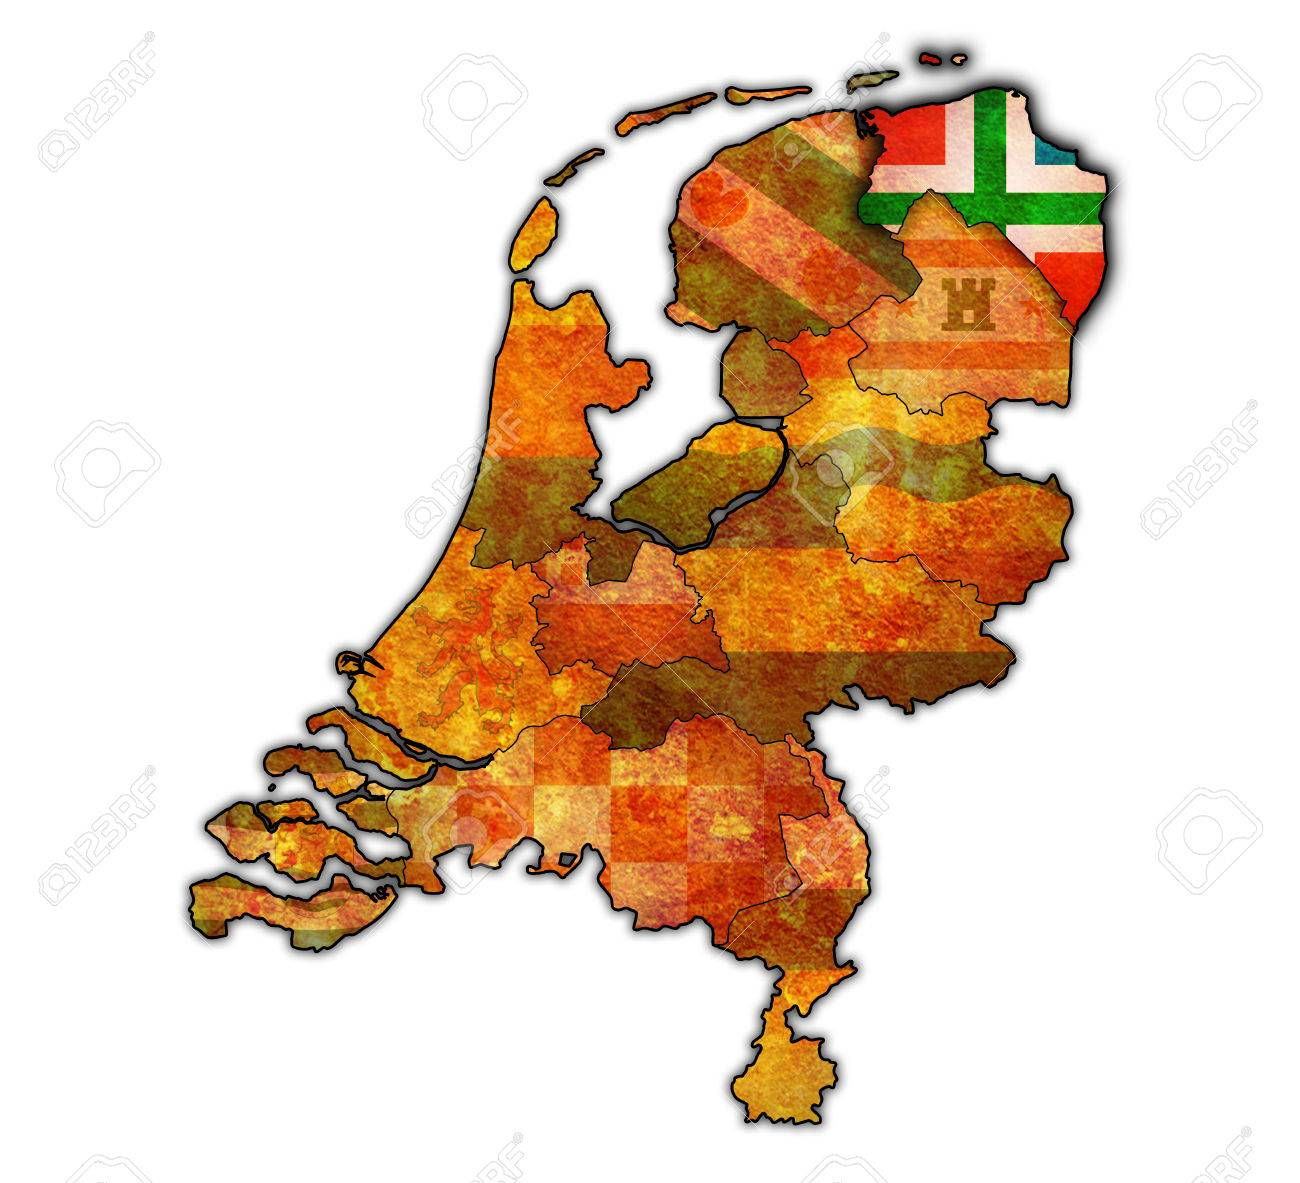 Groningen Flag On Map With Borders Of Provinces In Netherlands Stock ...